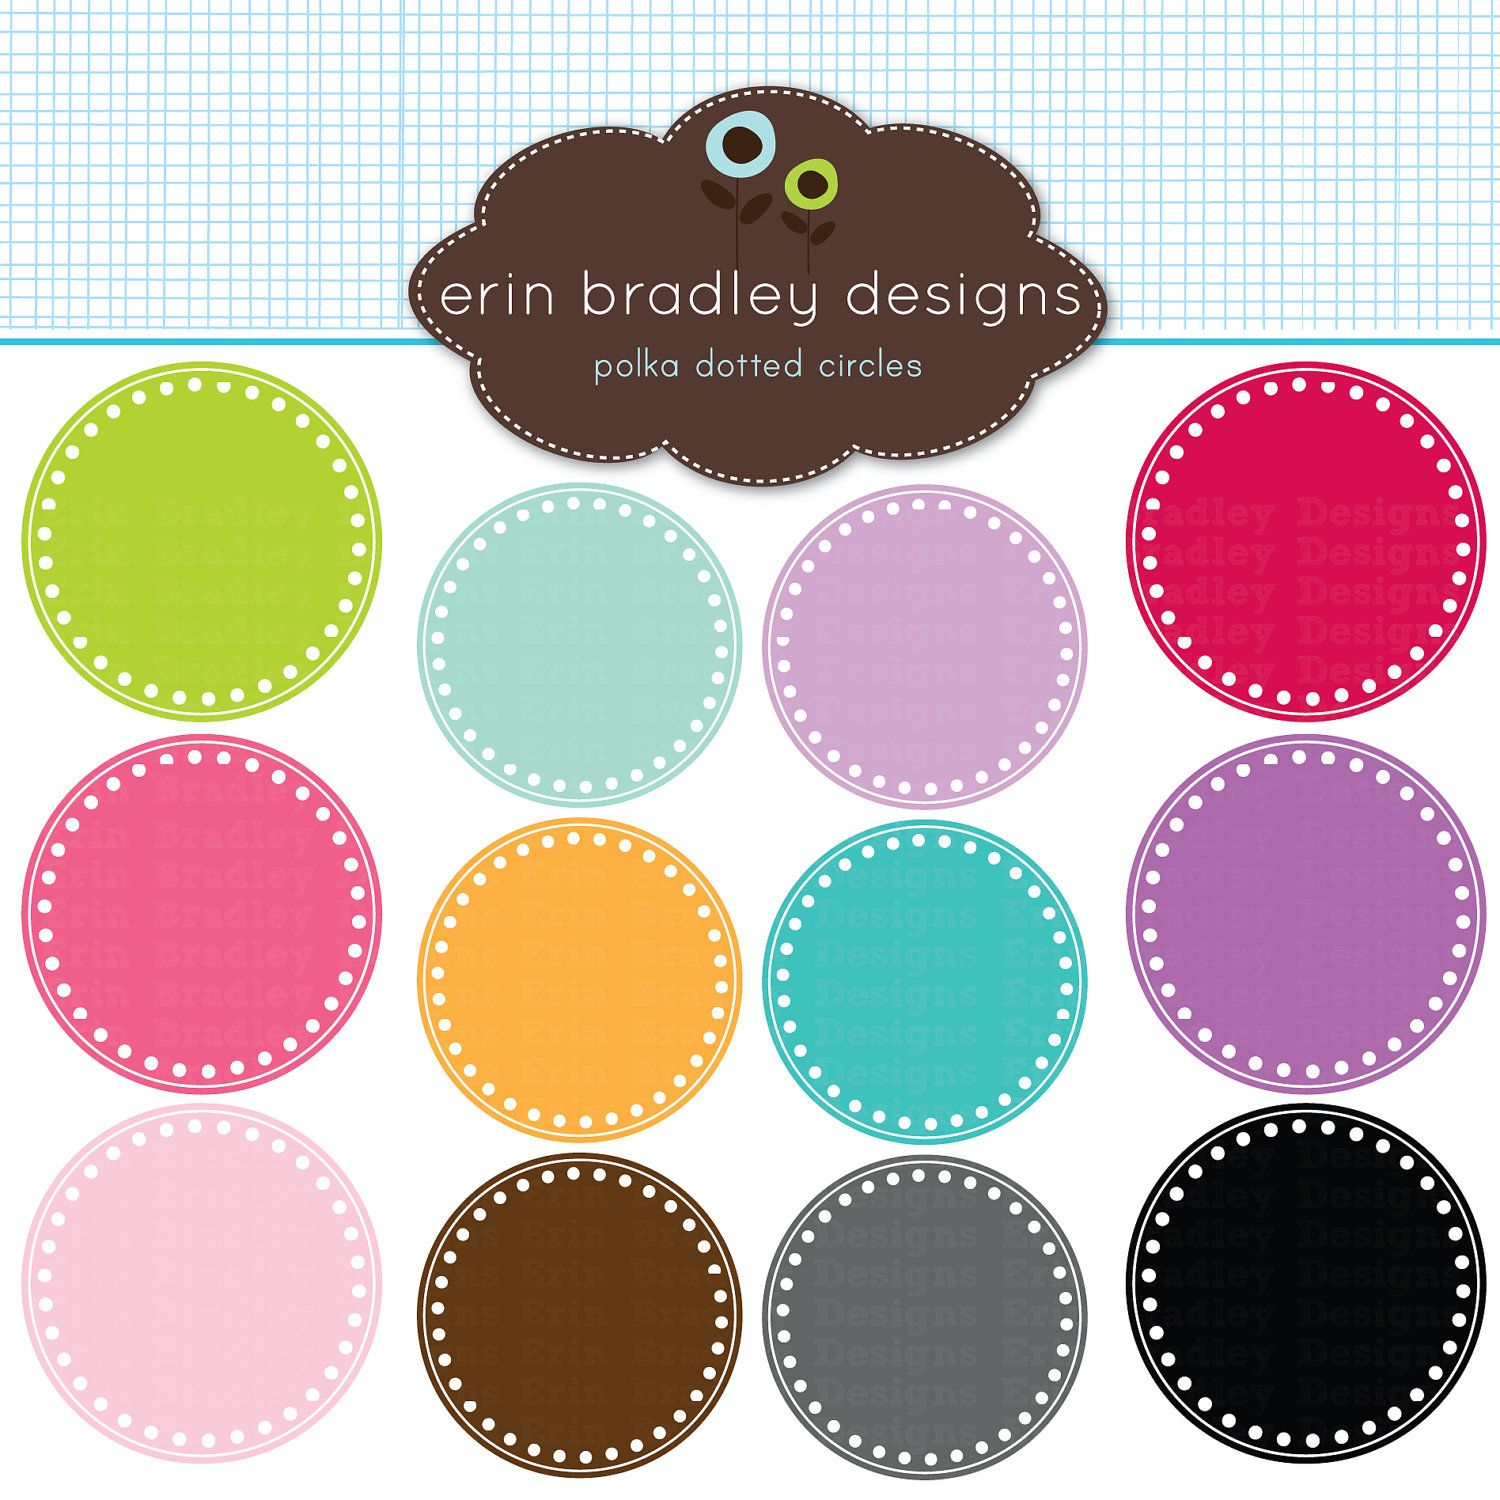 Digital Scrapbooking Clipart Clip Art Polka Dotted Circle Frames ...